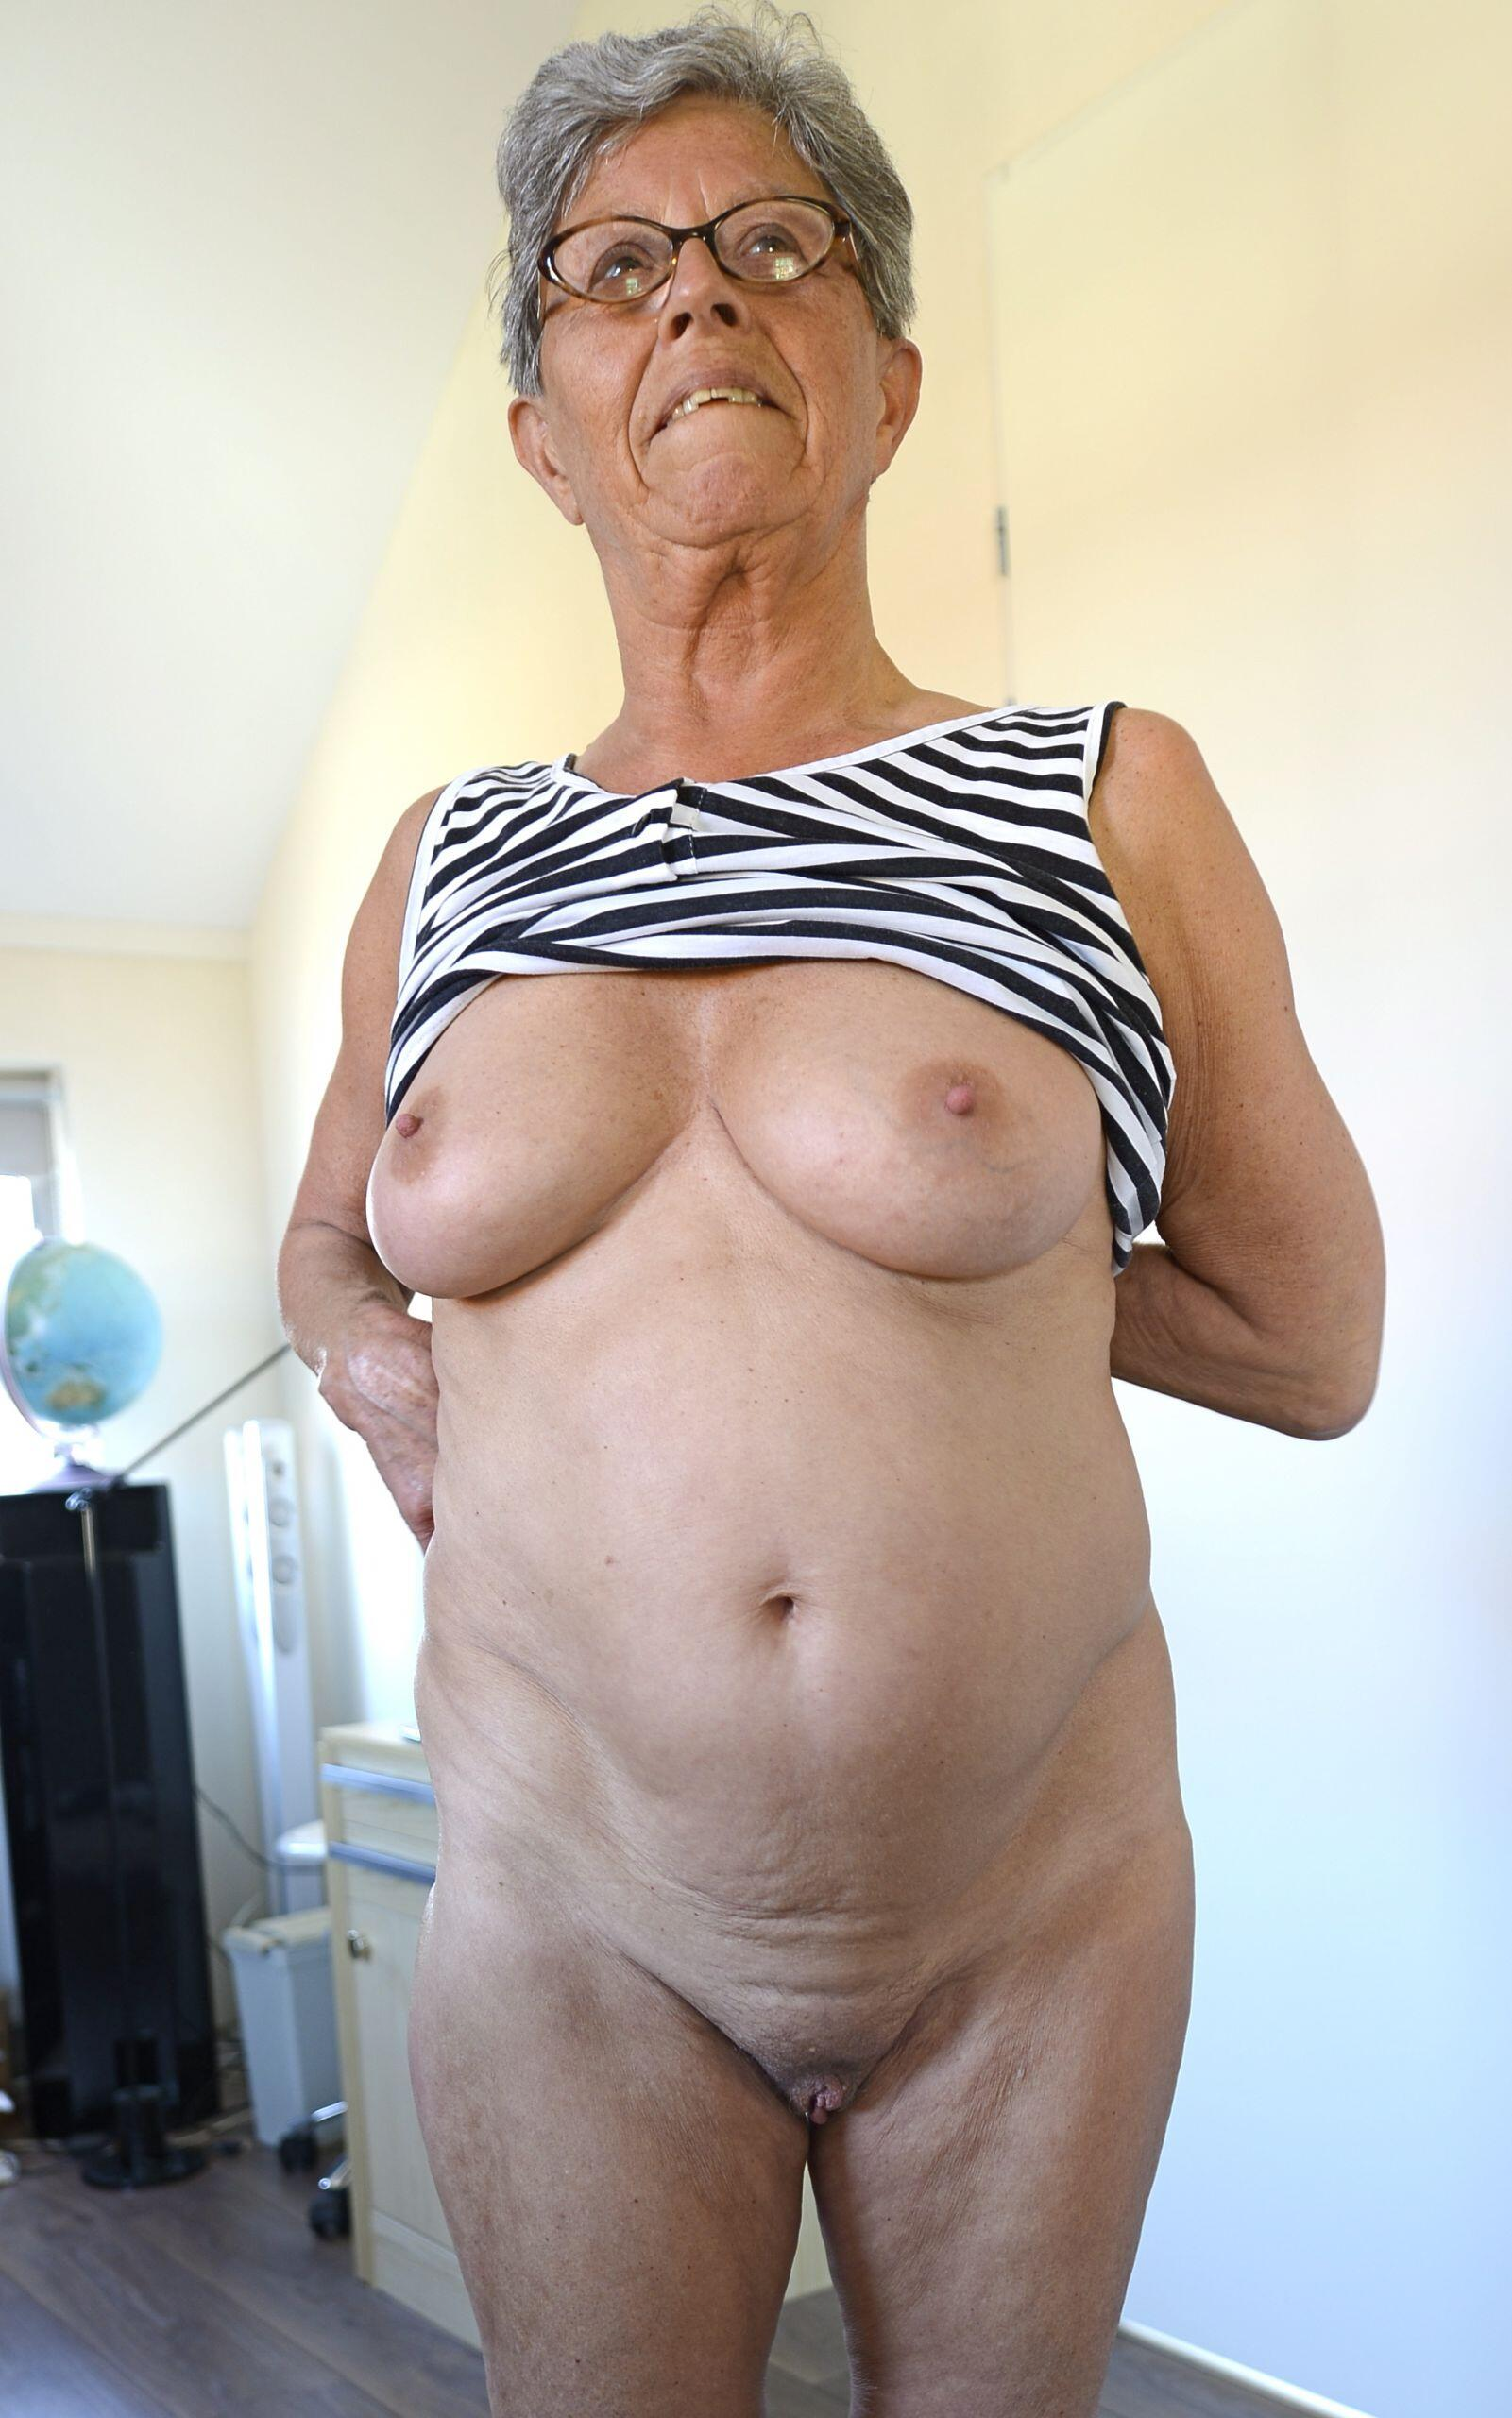 Old slut wants some action